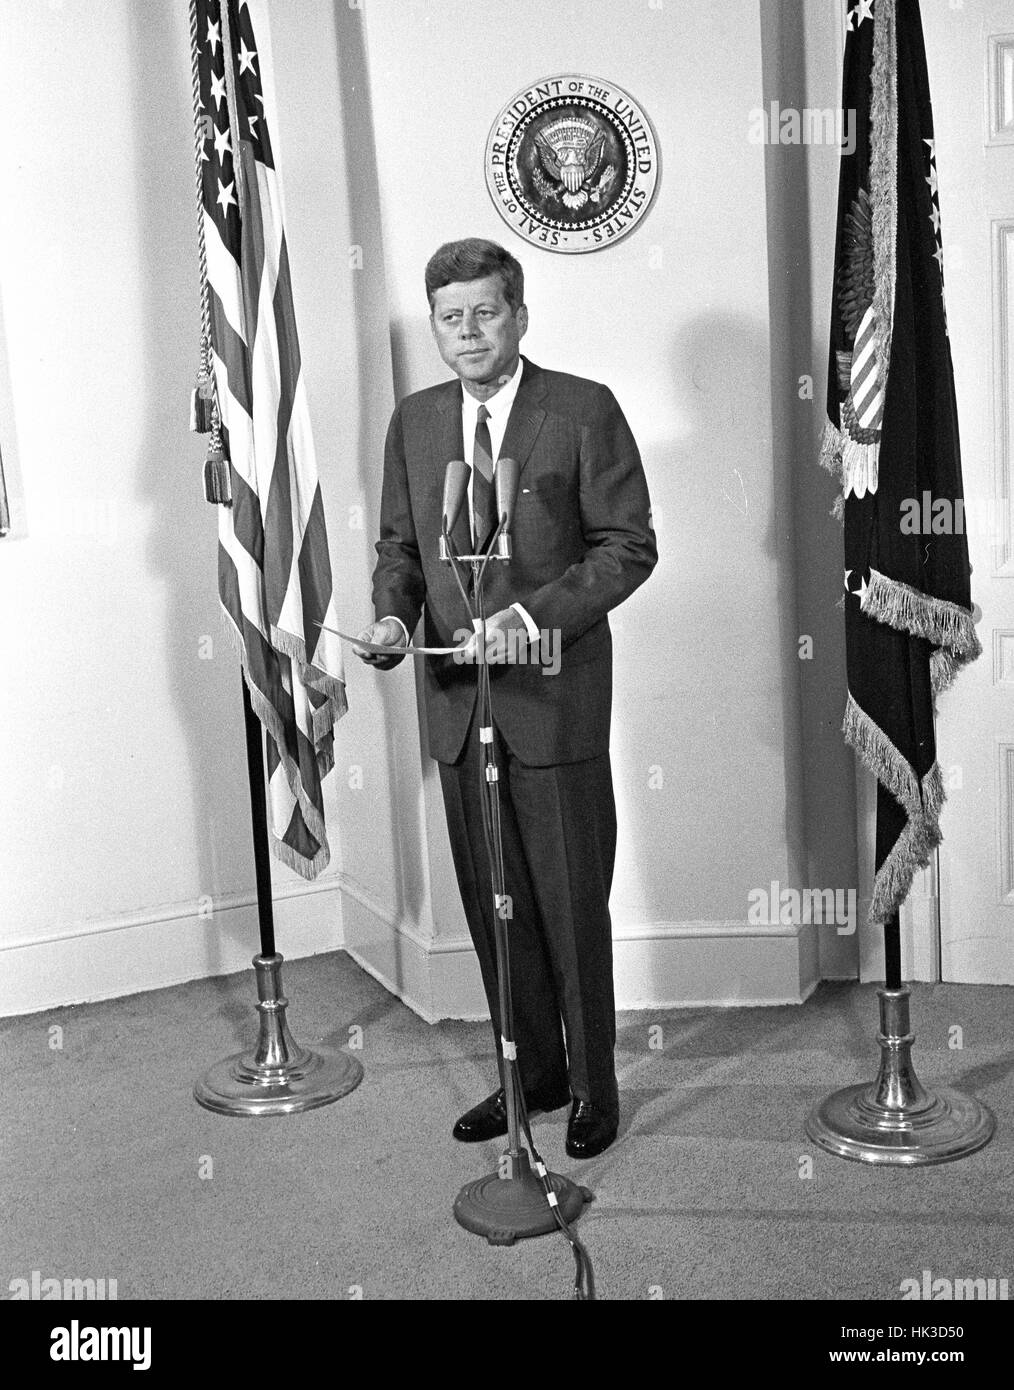 United States President John F. Kennedy announces the appointment of W. Willard Wirtz as US Secretary of Labor at - Stock Image